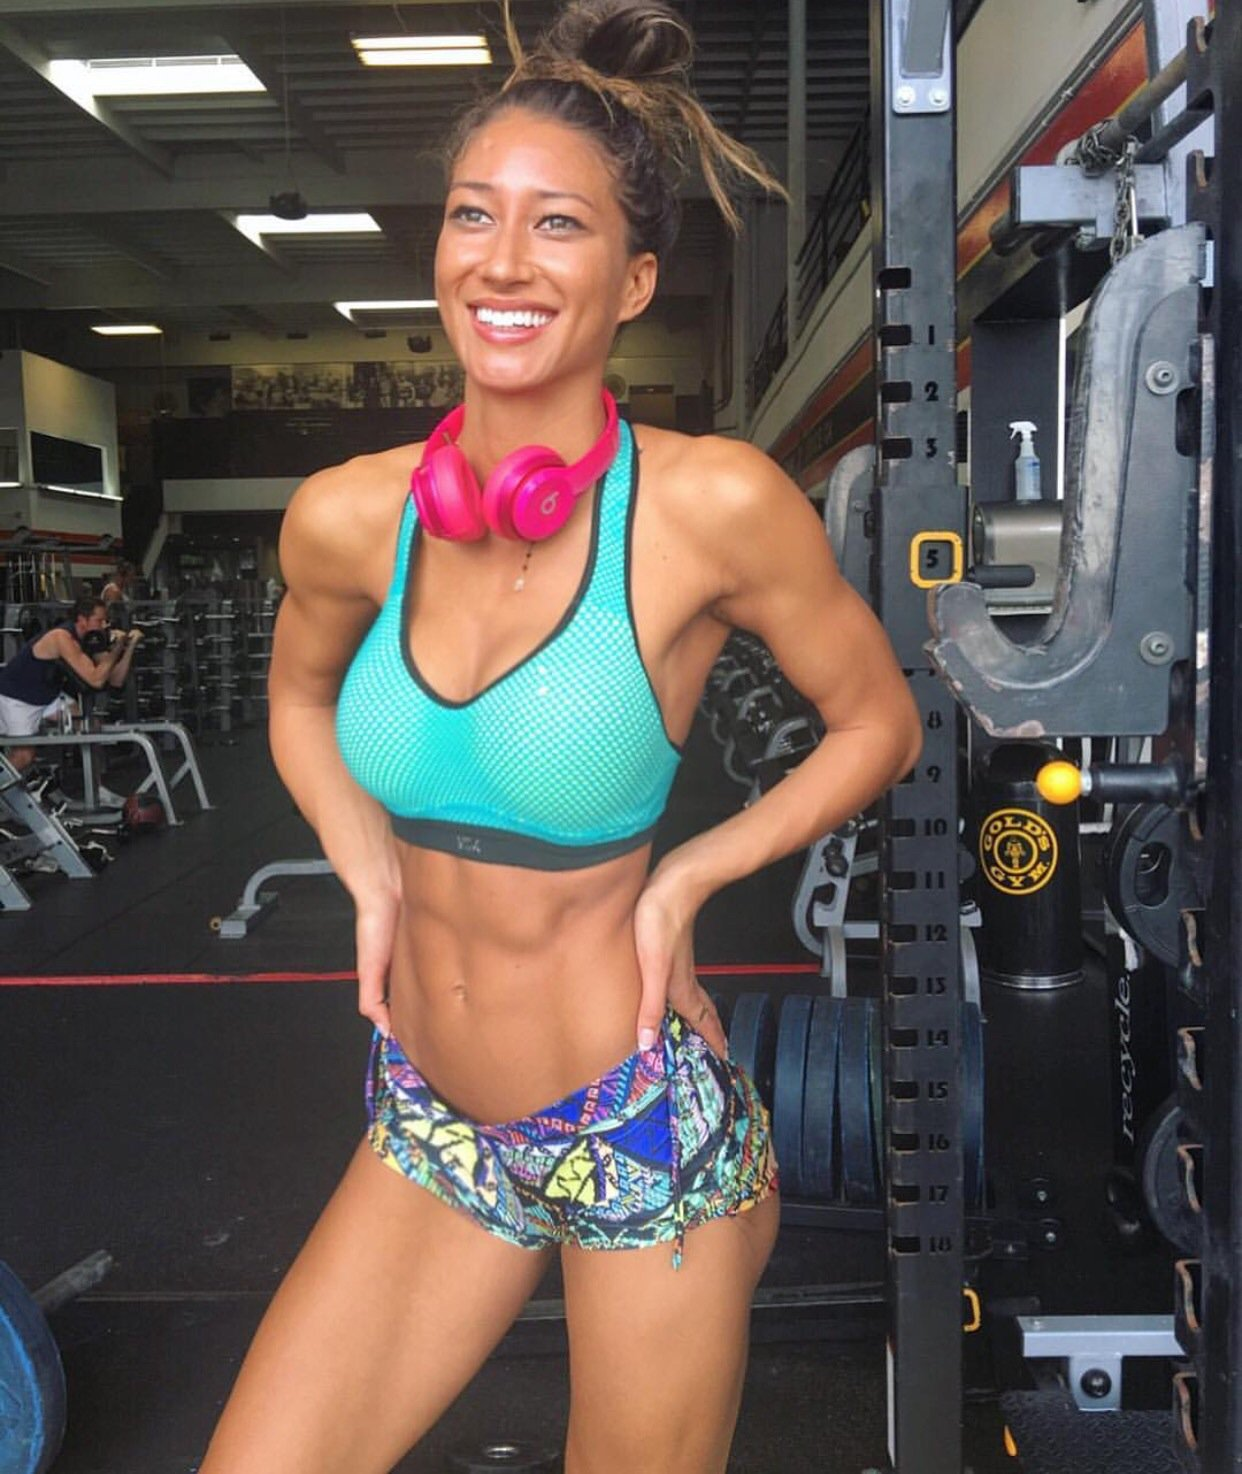 Karina Elle naked (45 pictures), photo Feet, Twitter, swimsuit 2017